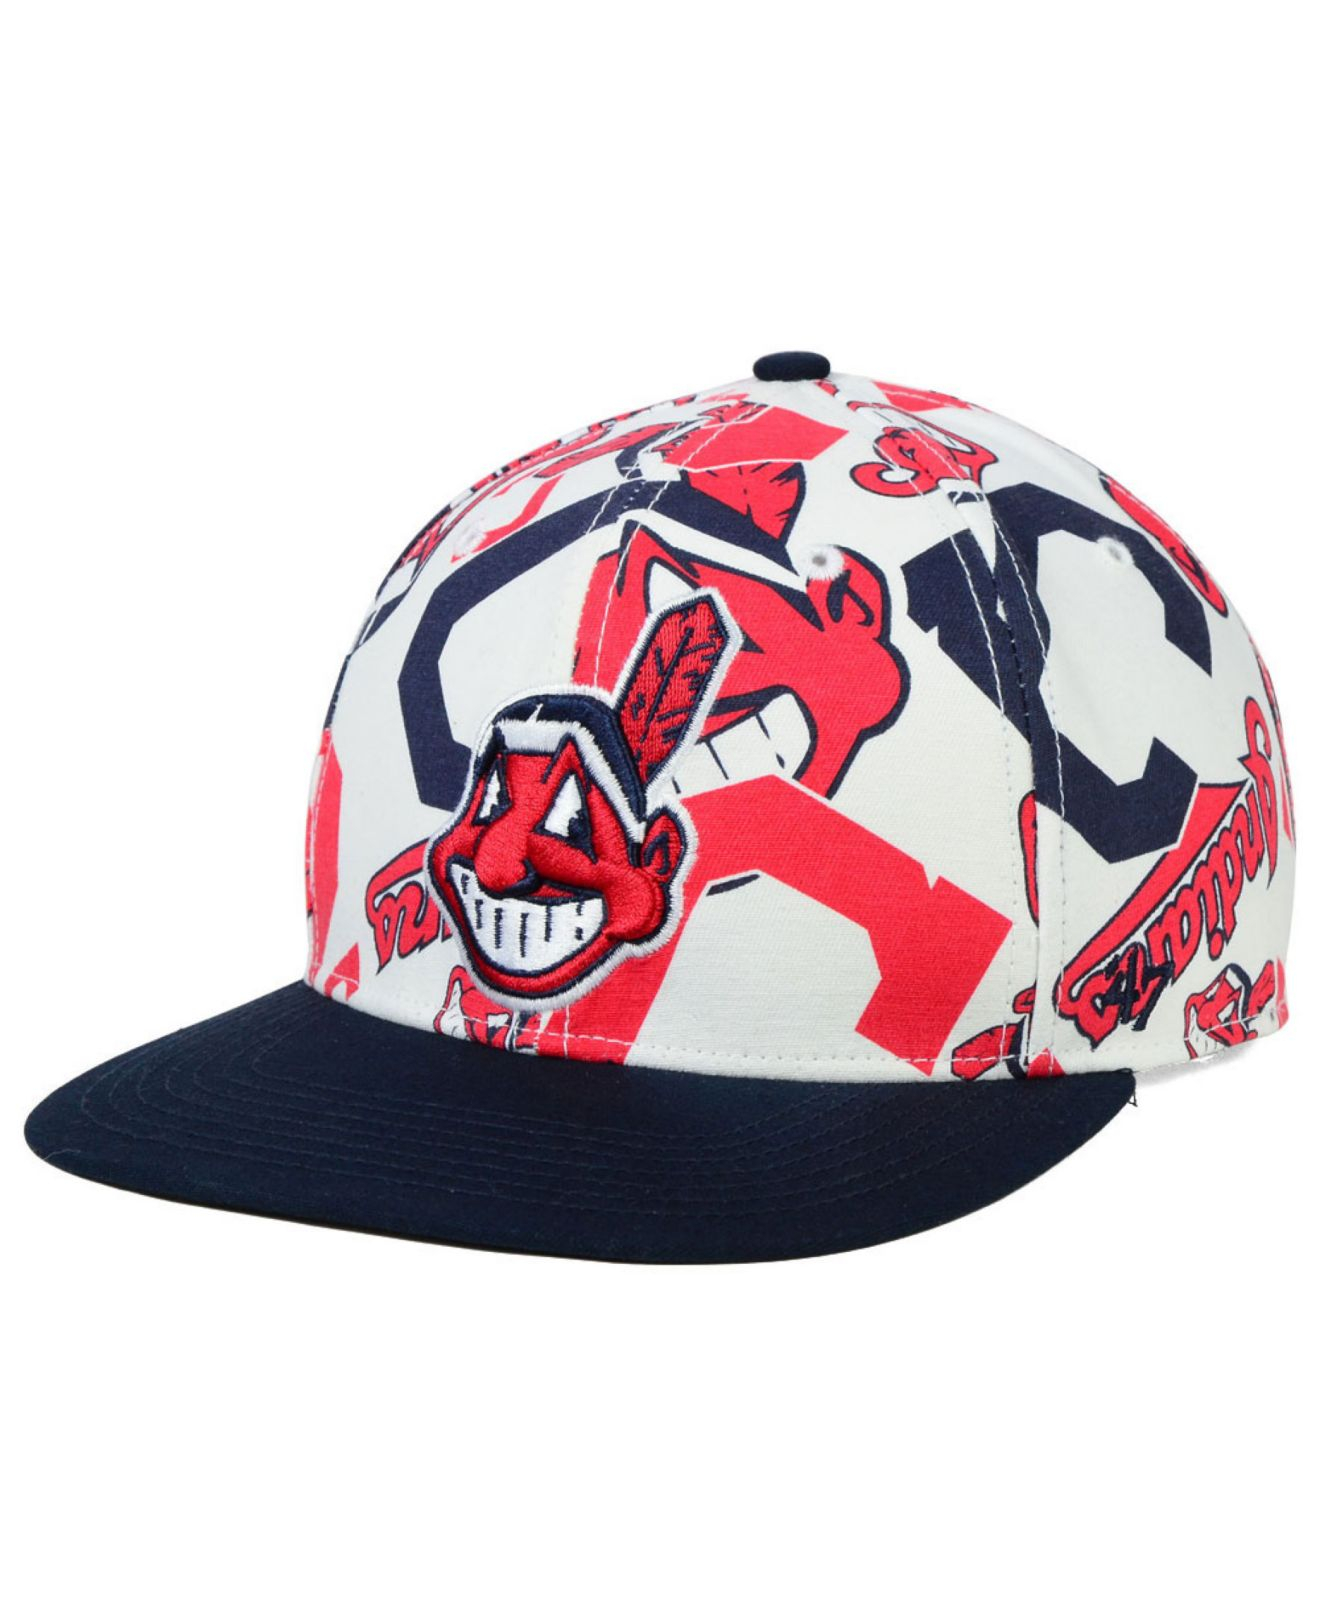 free shipping 35525 0485d ... norway lyst 47 brand cleveland indians snapback cap in white for men  956e9 ef6fd